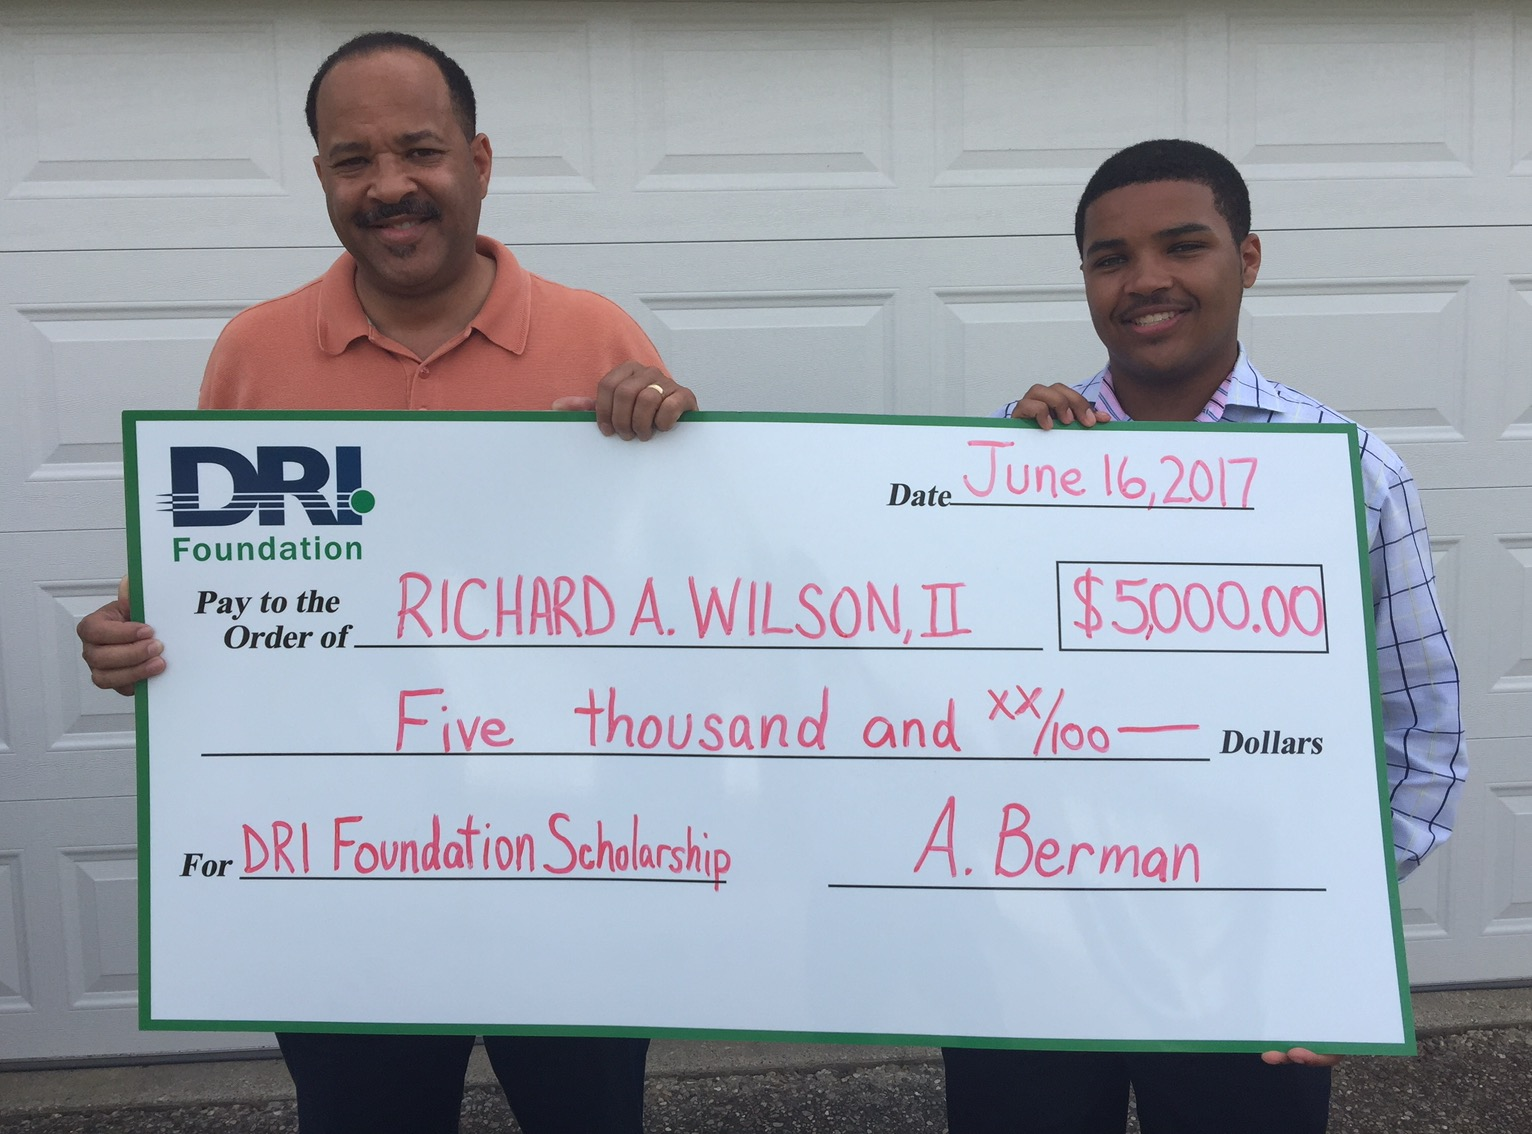 DRI Foundation - High School Scholarship Winner